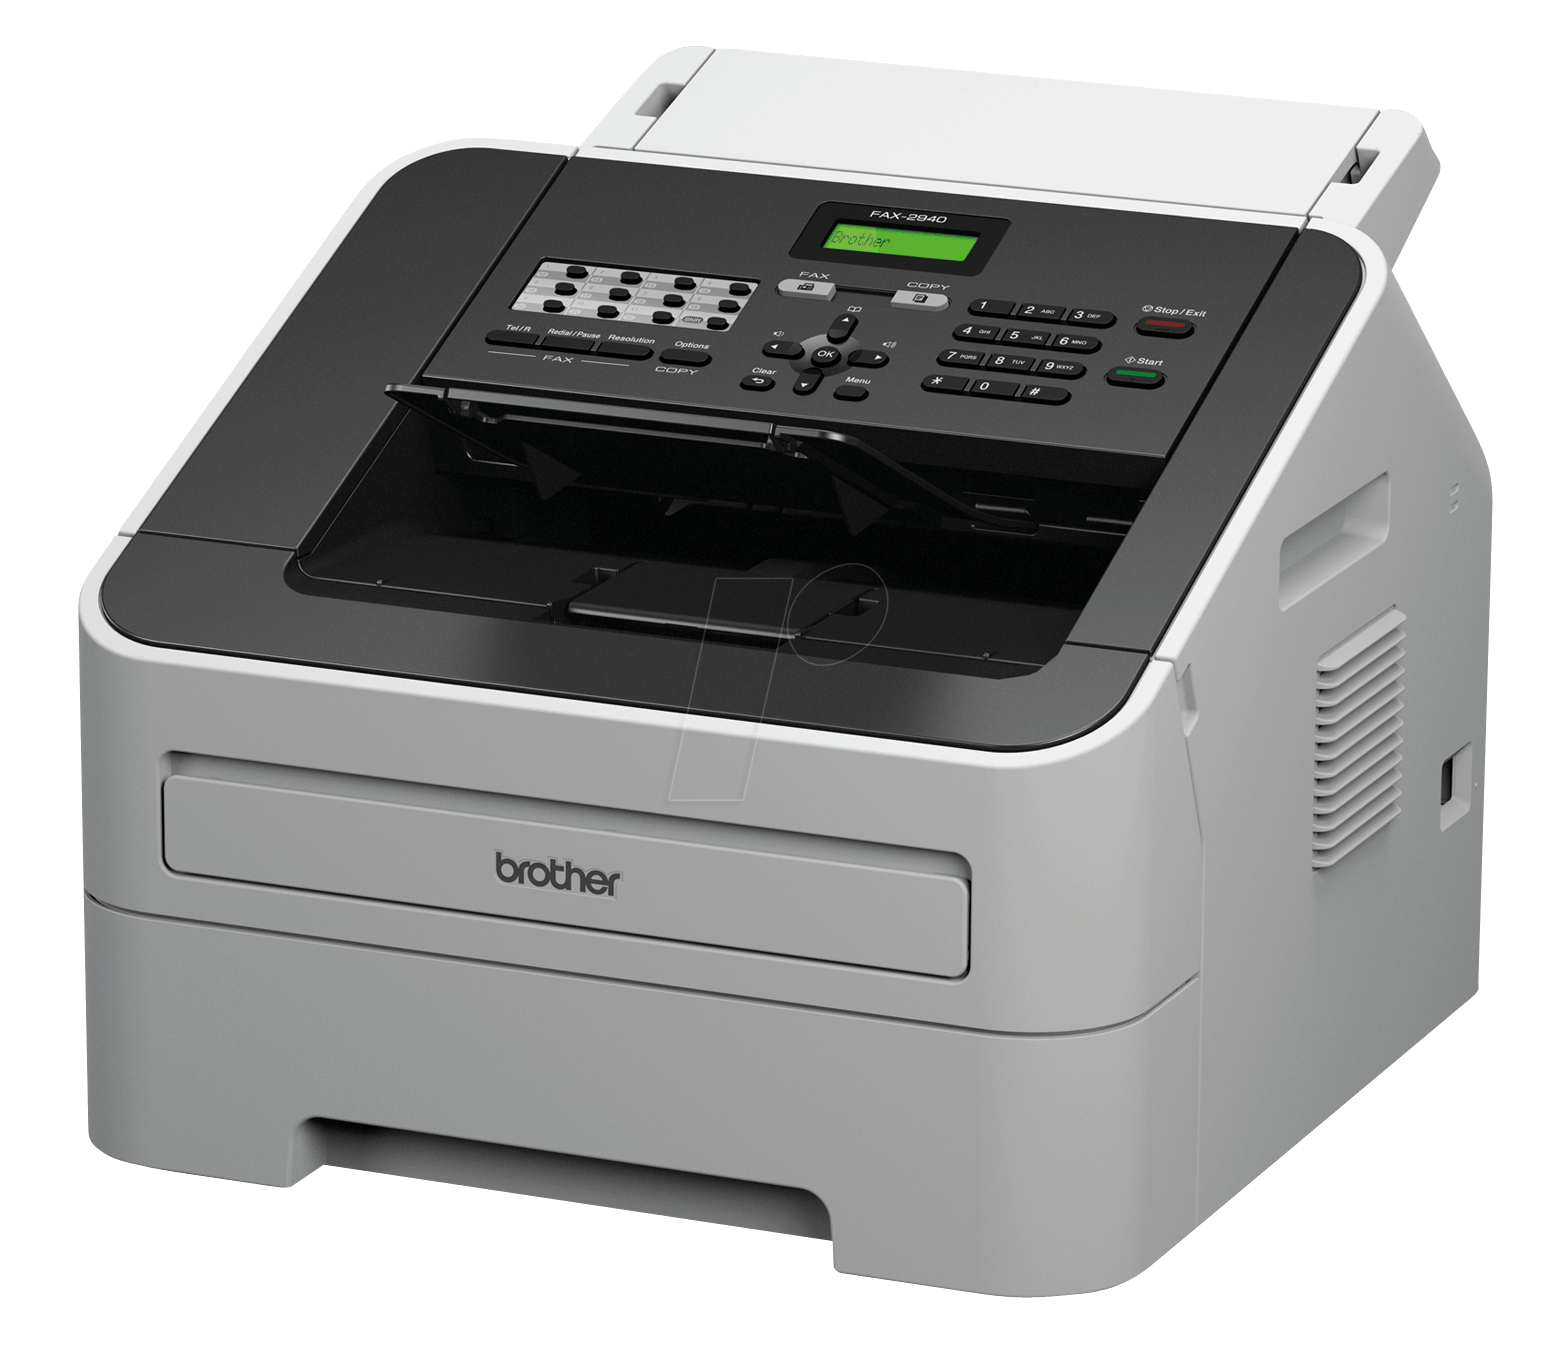 Brother fax machine BROTHER FAX2940G1 - PNG Fax Machine